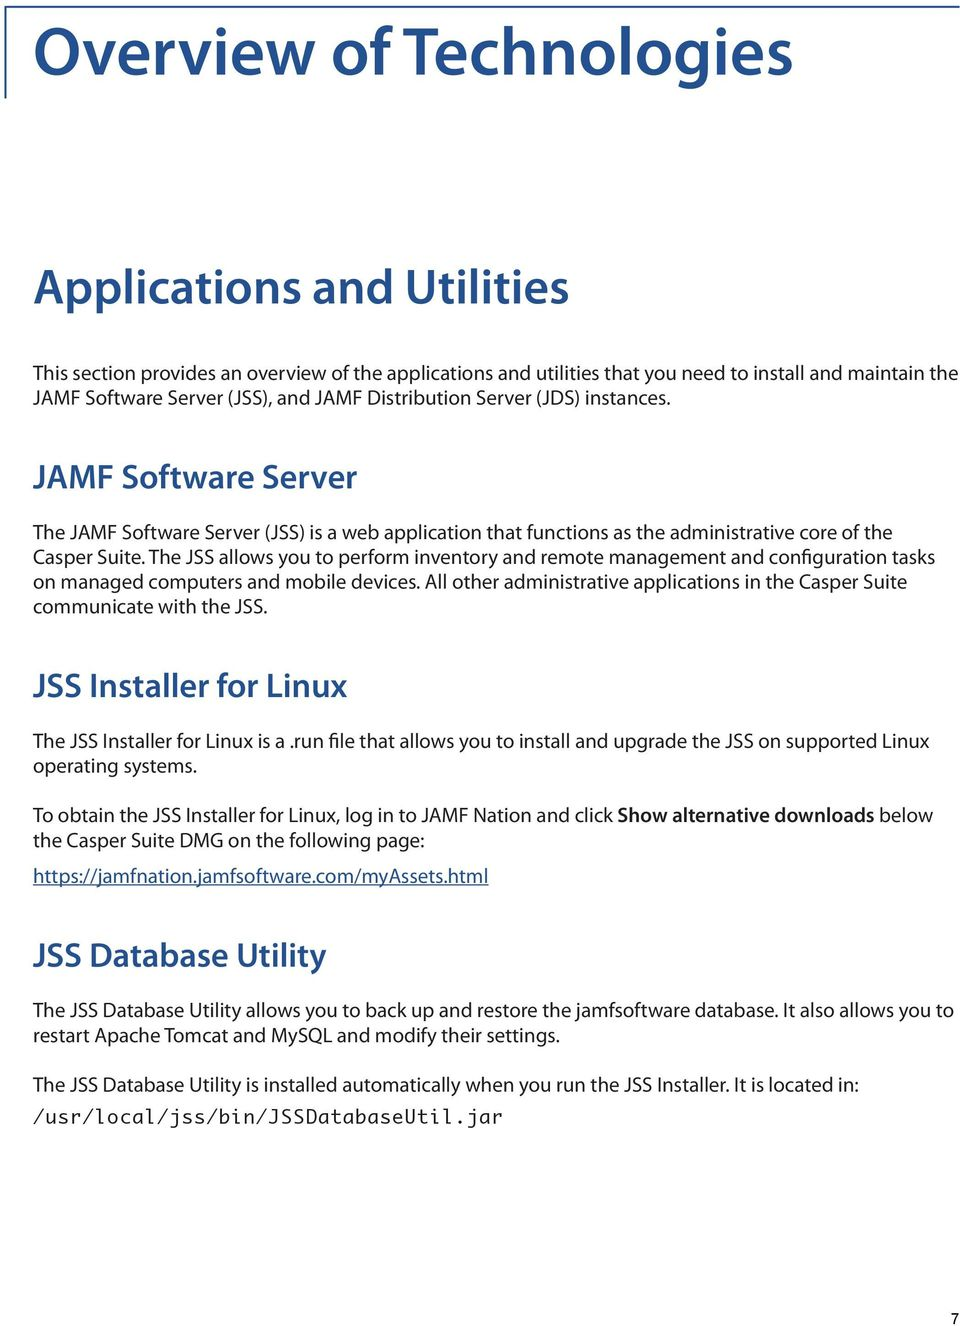 The JSS allows you to perform inventory and remote management and configuration tasks on managed computers and mobile devices.